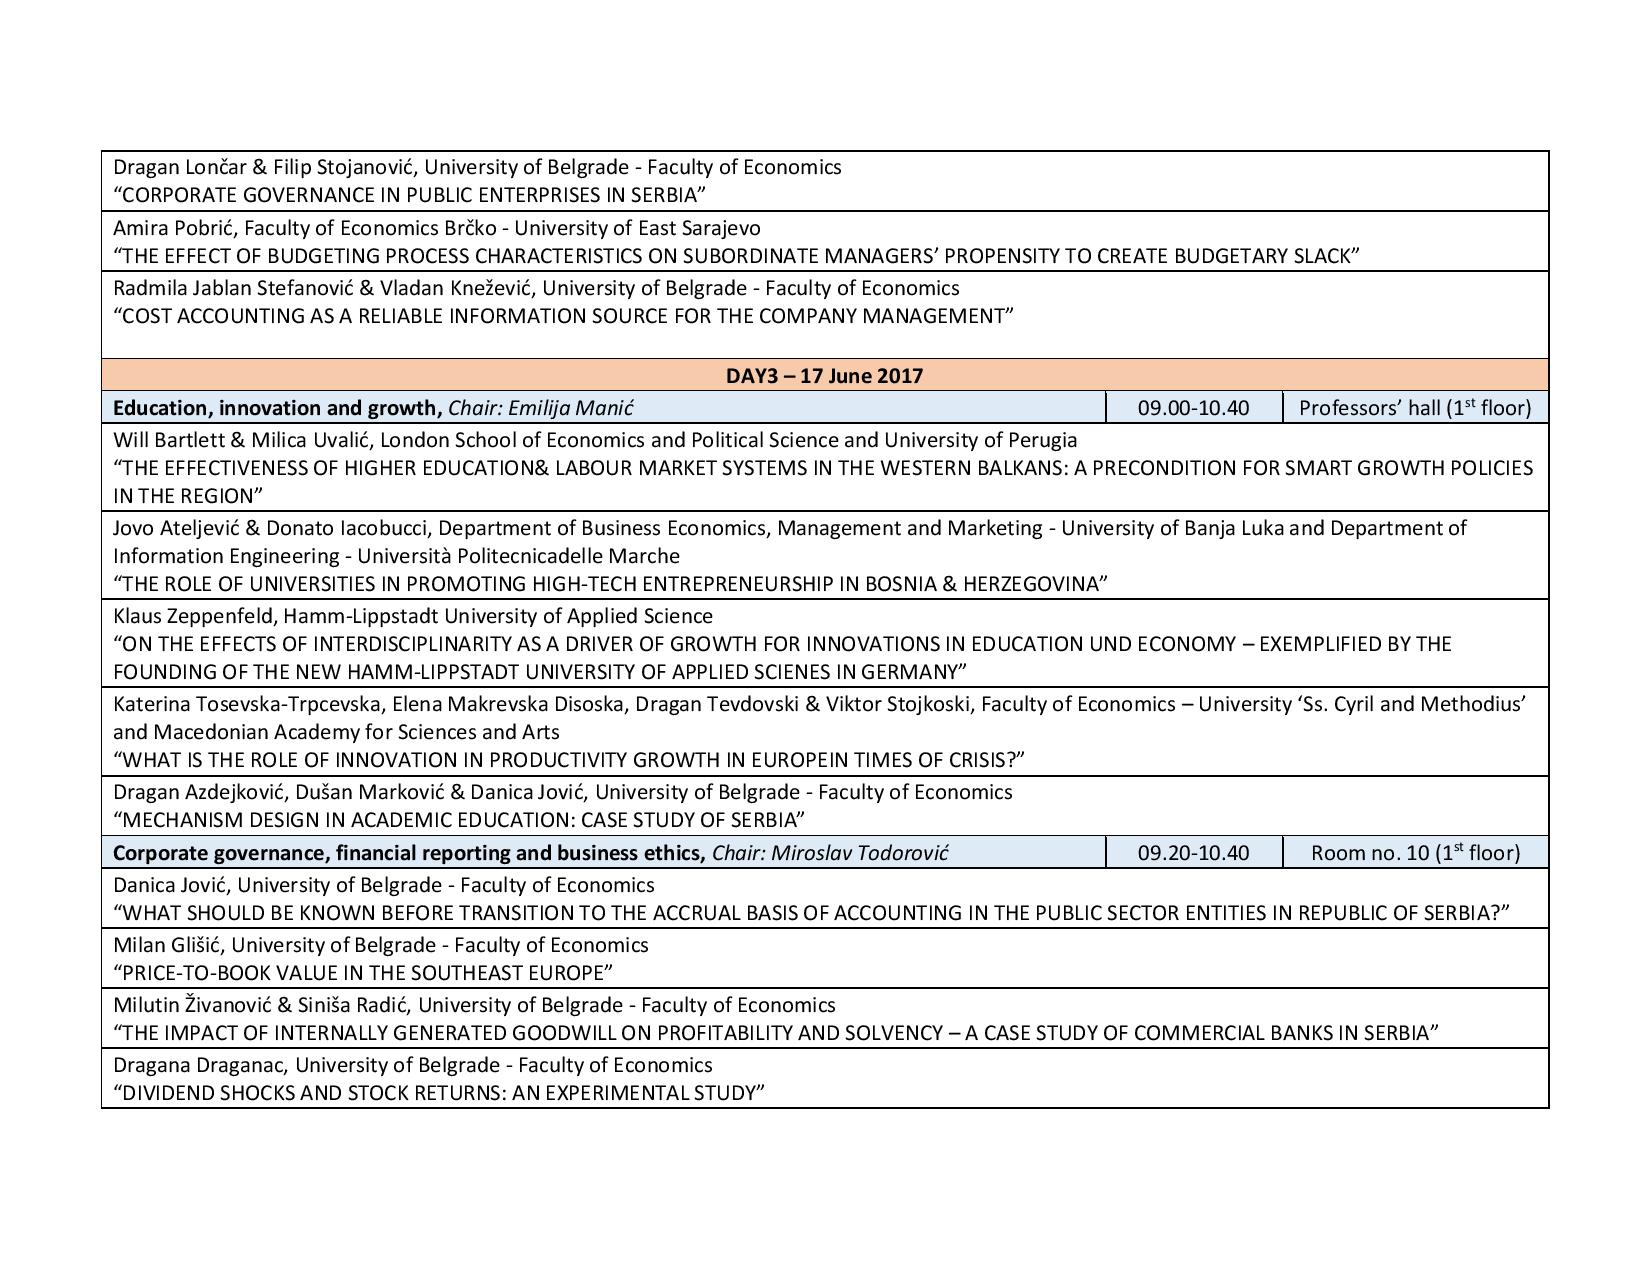 Conference program_Faculty of Economics (University of Belgrade)_draft-page-009